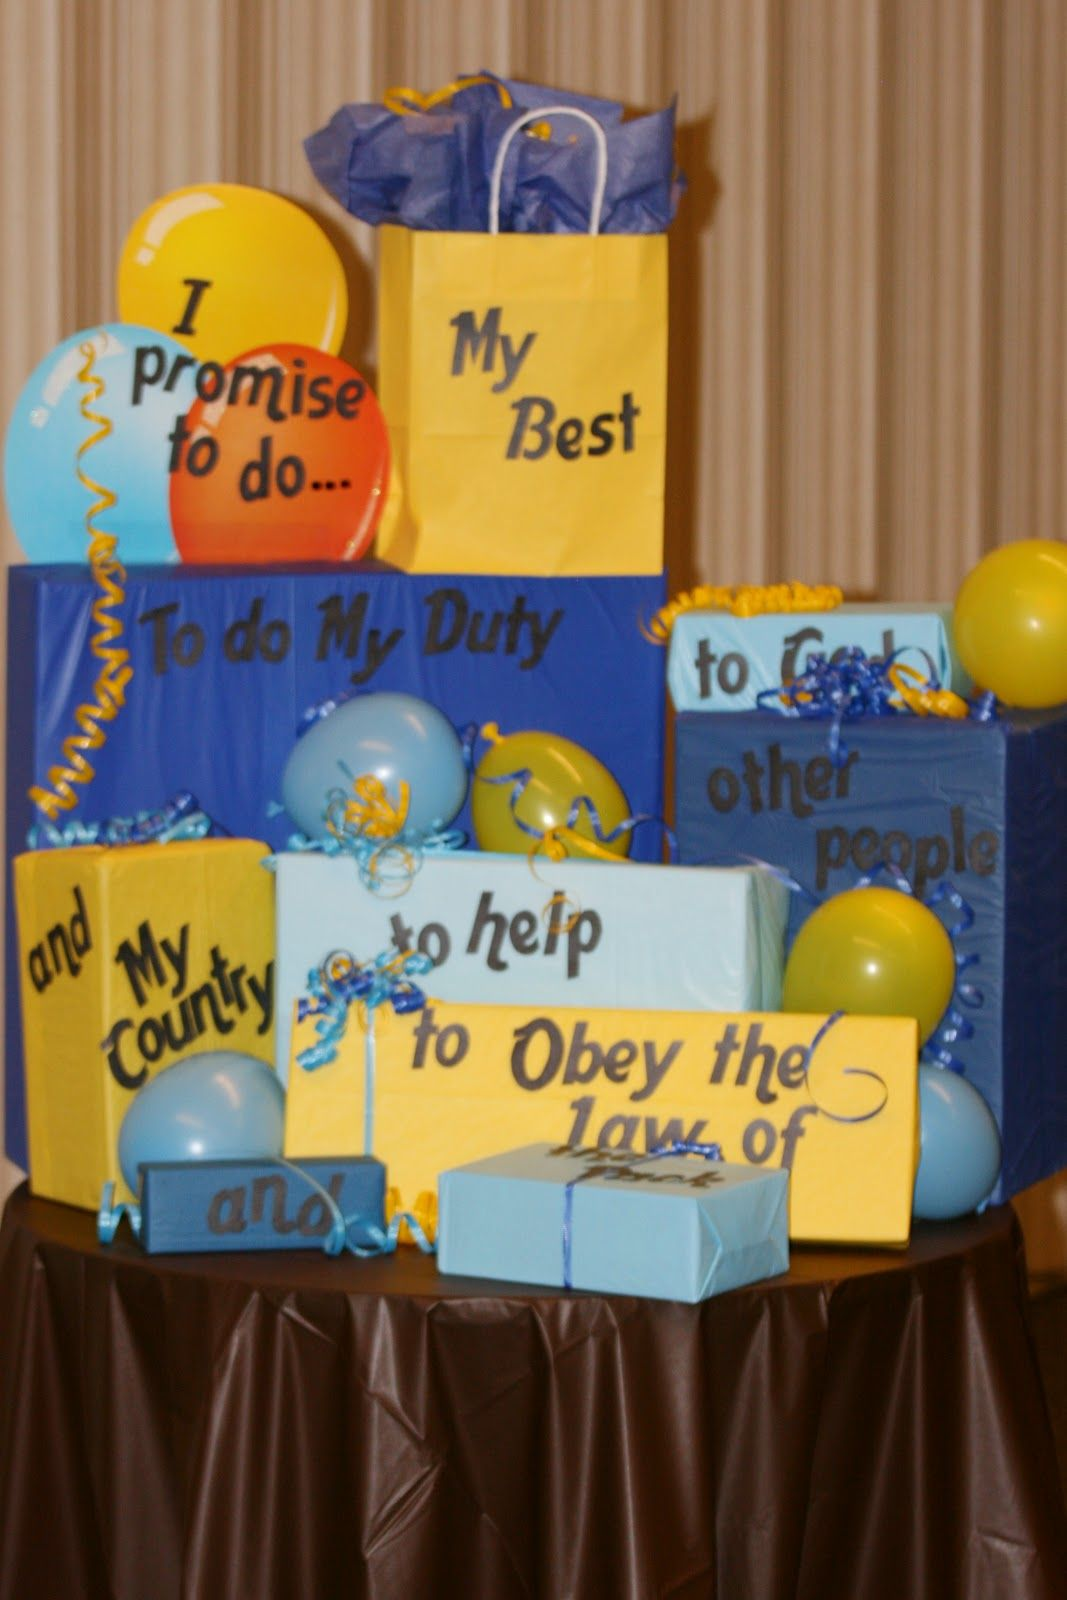 blue and gold banquet ideas | cub masternow what!: blue and gold